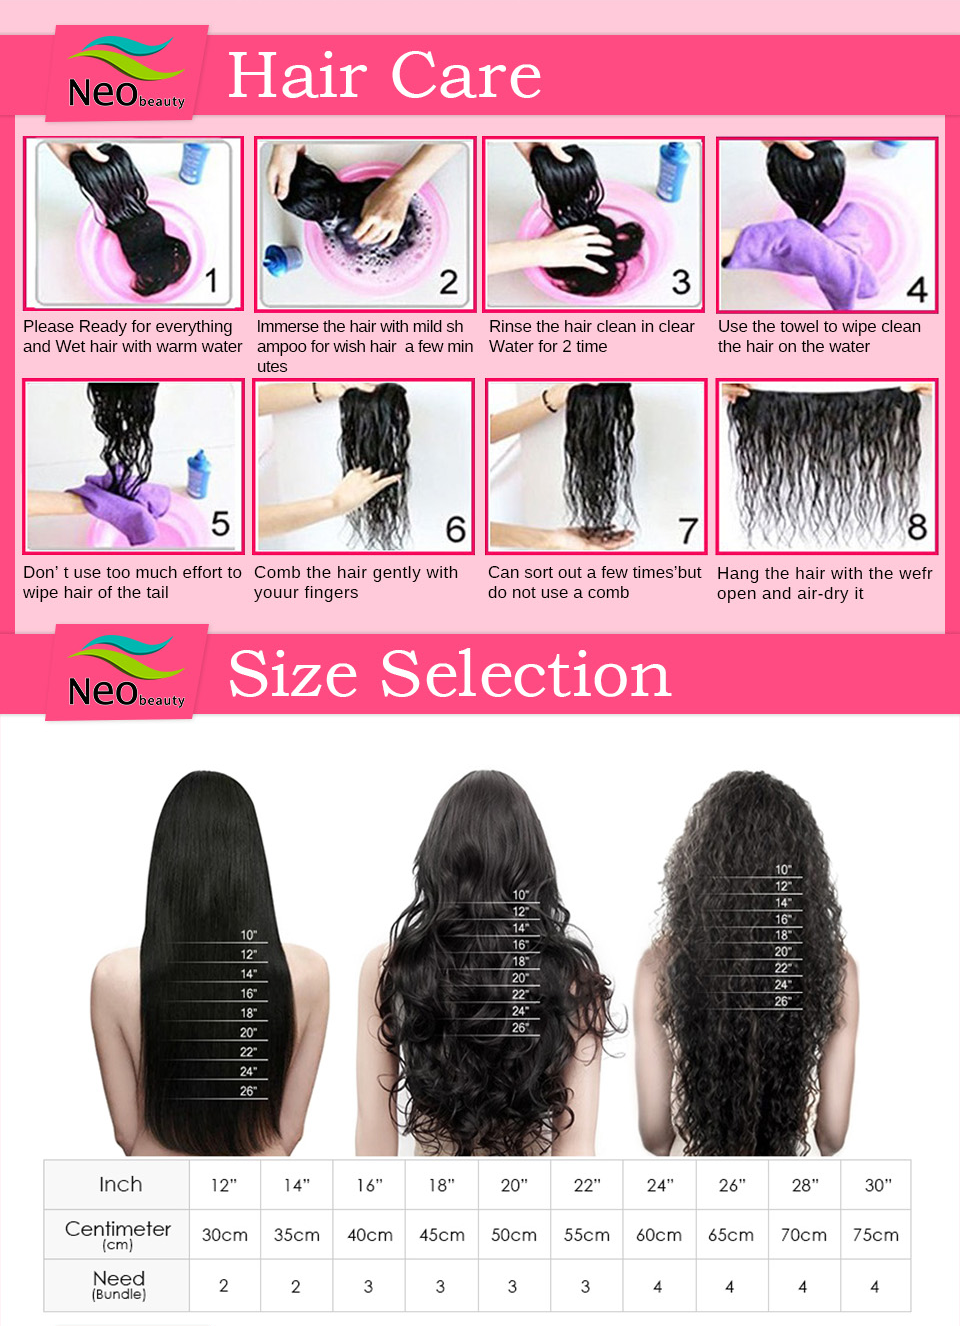 Hair care & size chart | Neobeauty Hair